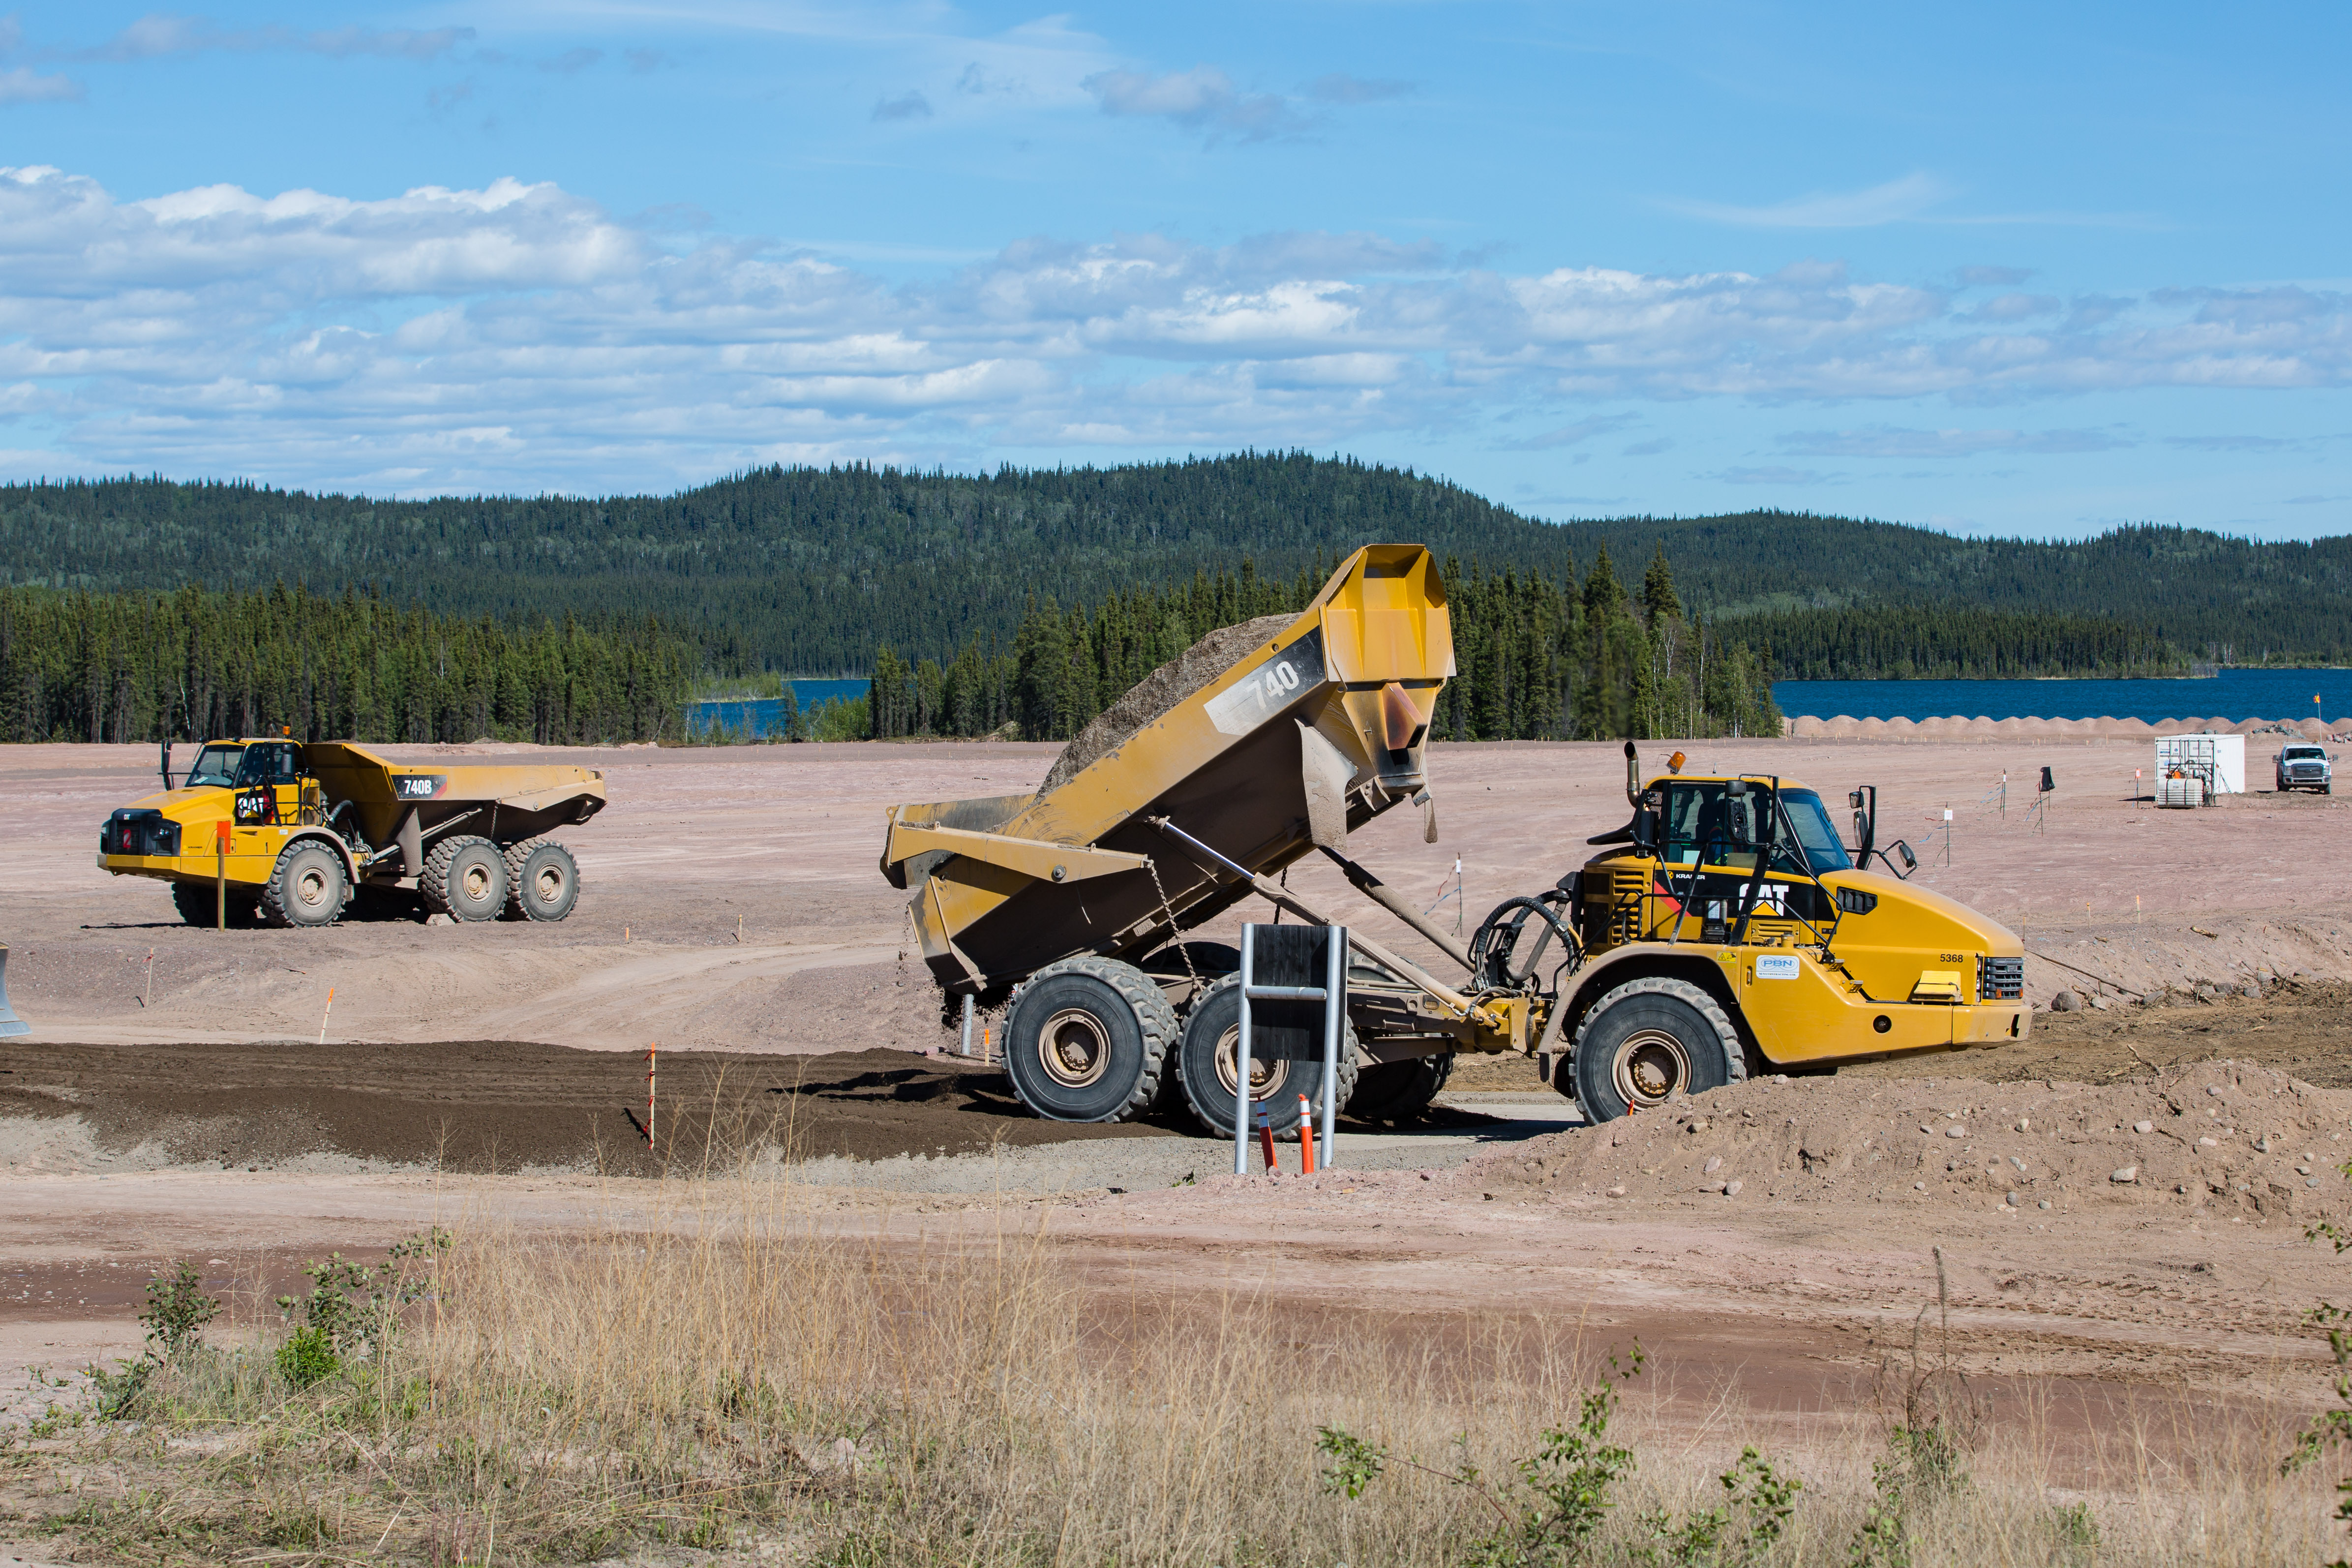 Large trucks haul material to cover Lorado site.